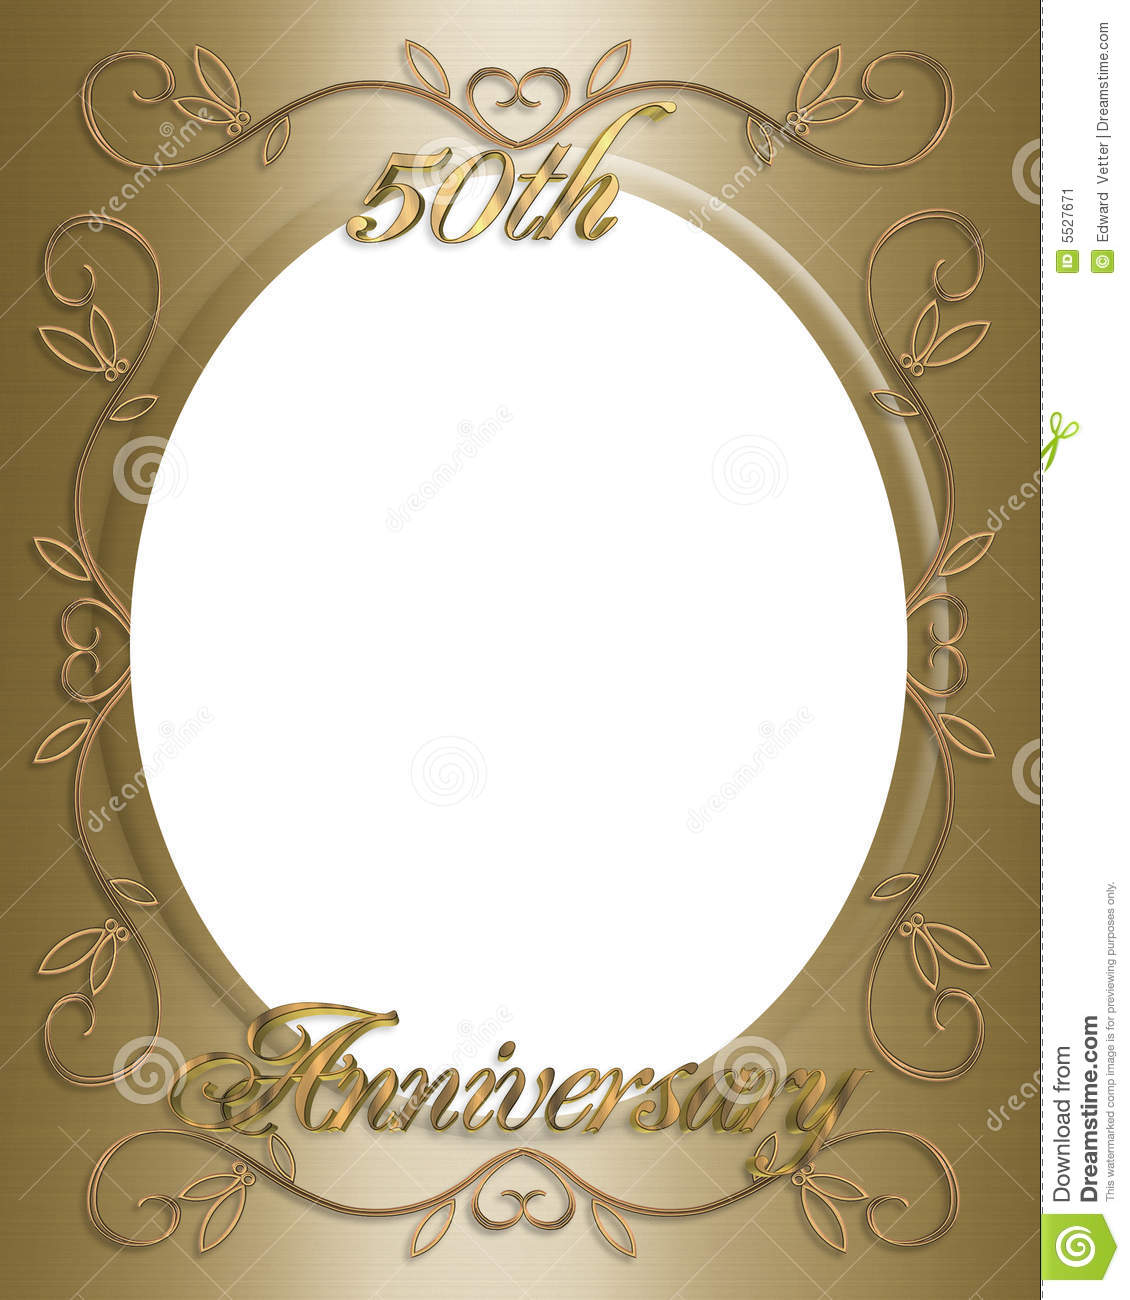 50th Wedding Anniversary Frame Stock Illustration Illustration Of